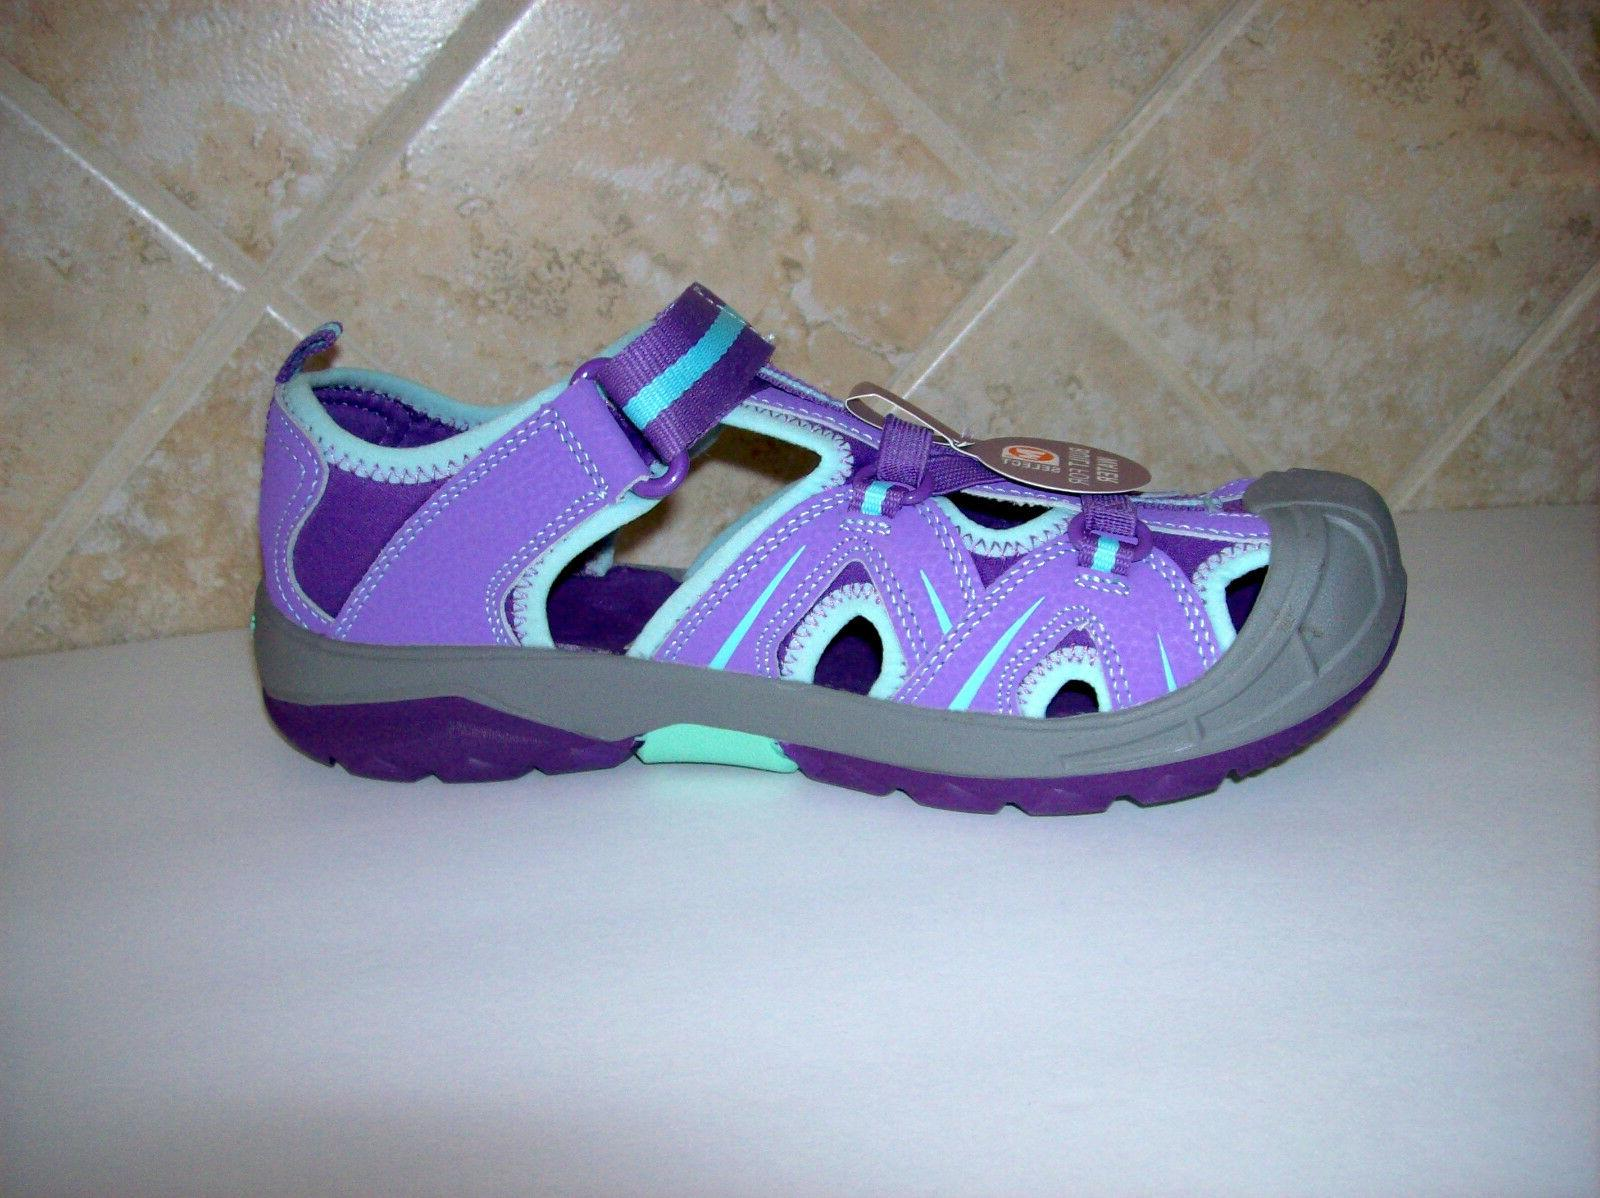 NEW Shoes Hiking Shoes Size 6?